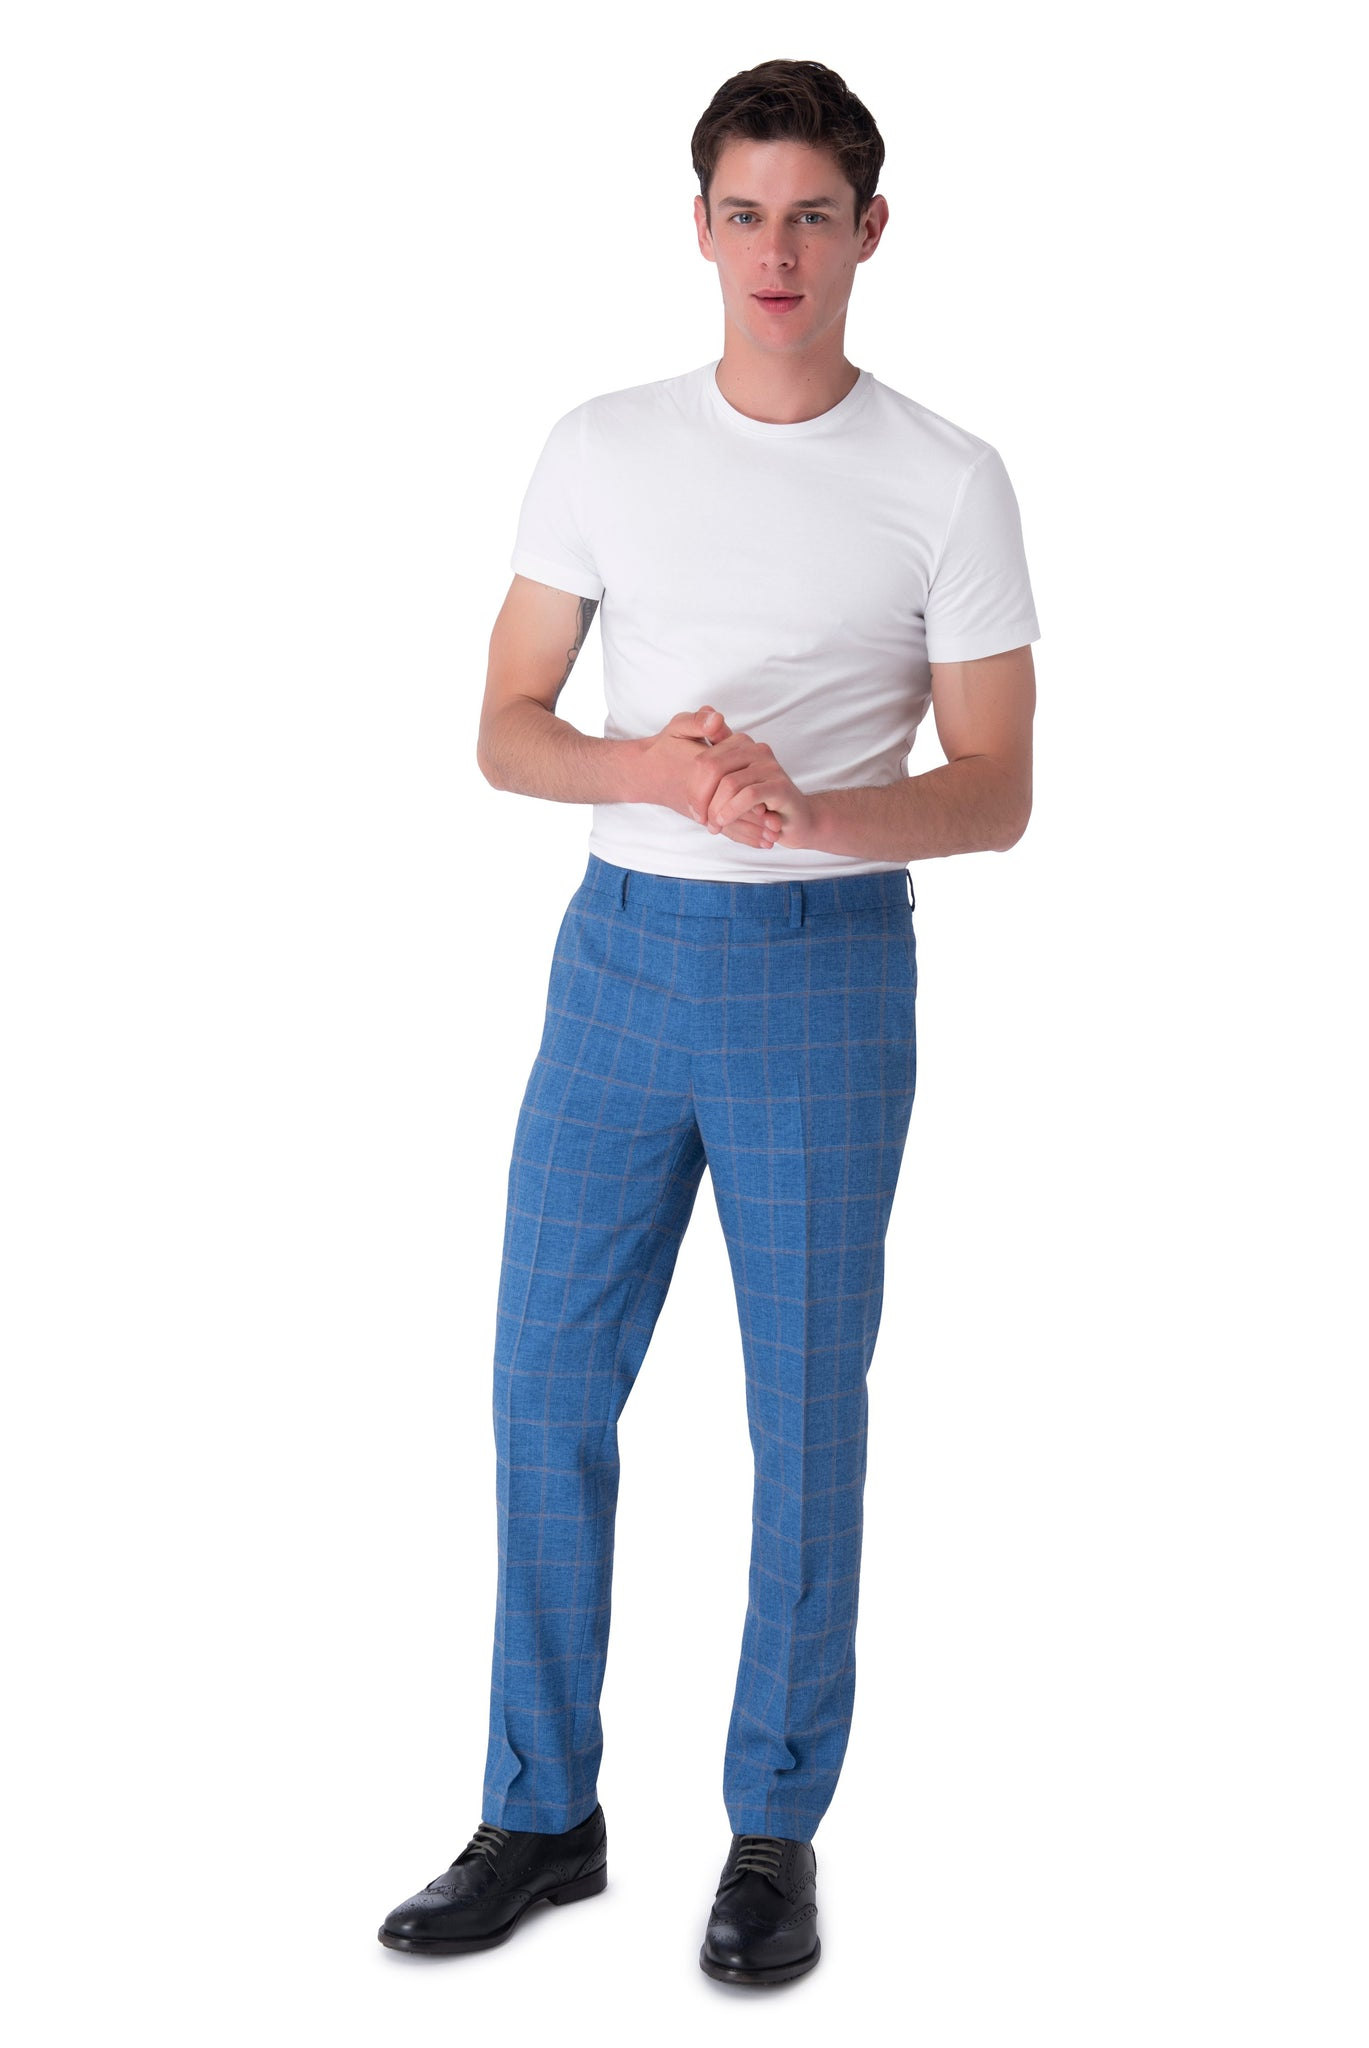 Trousers of WILLIAM Blue Check Double Breasted Suit